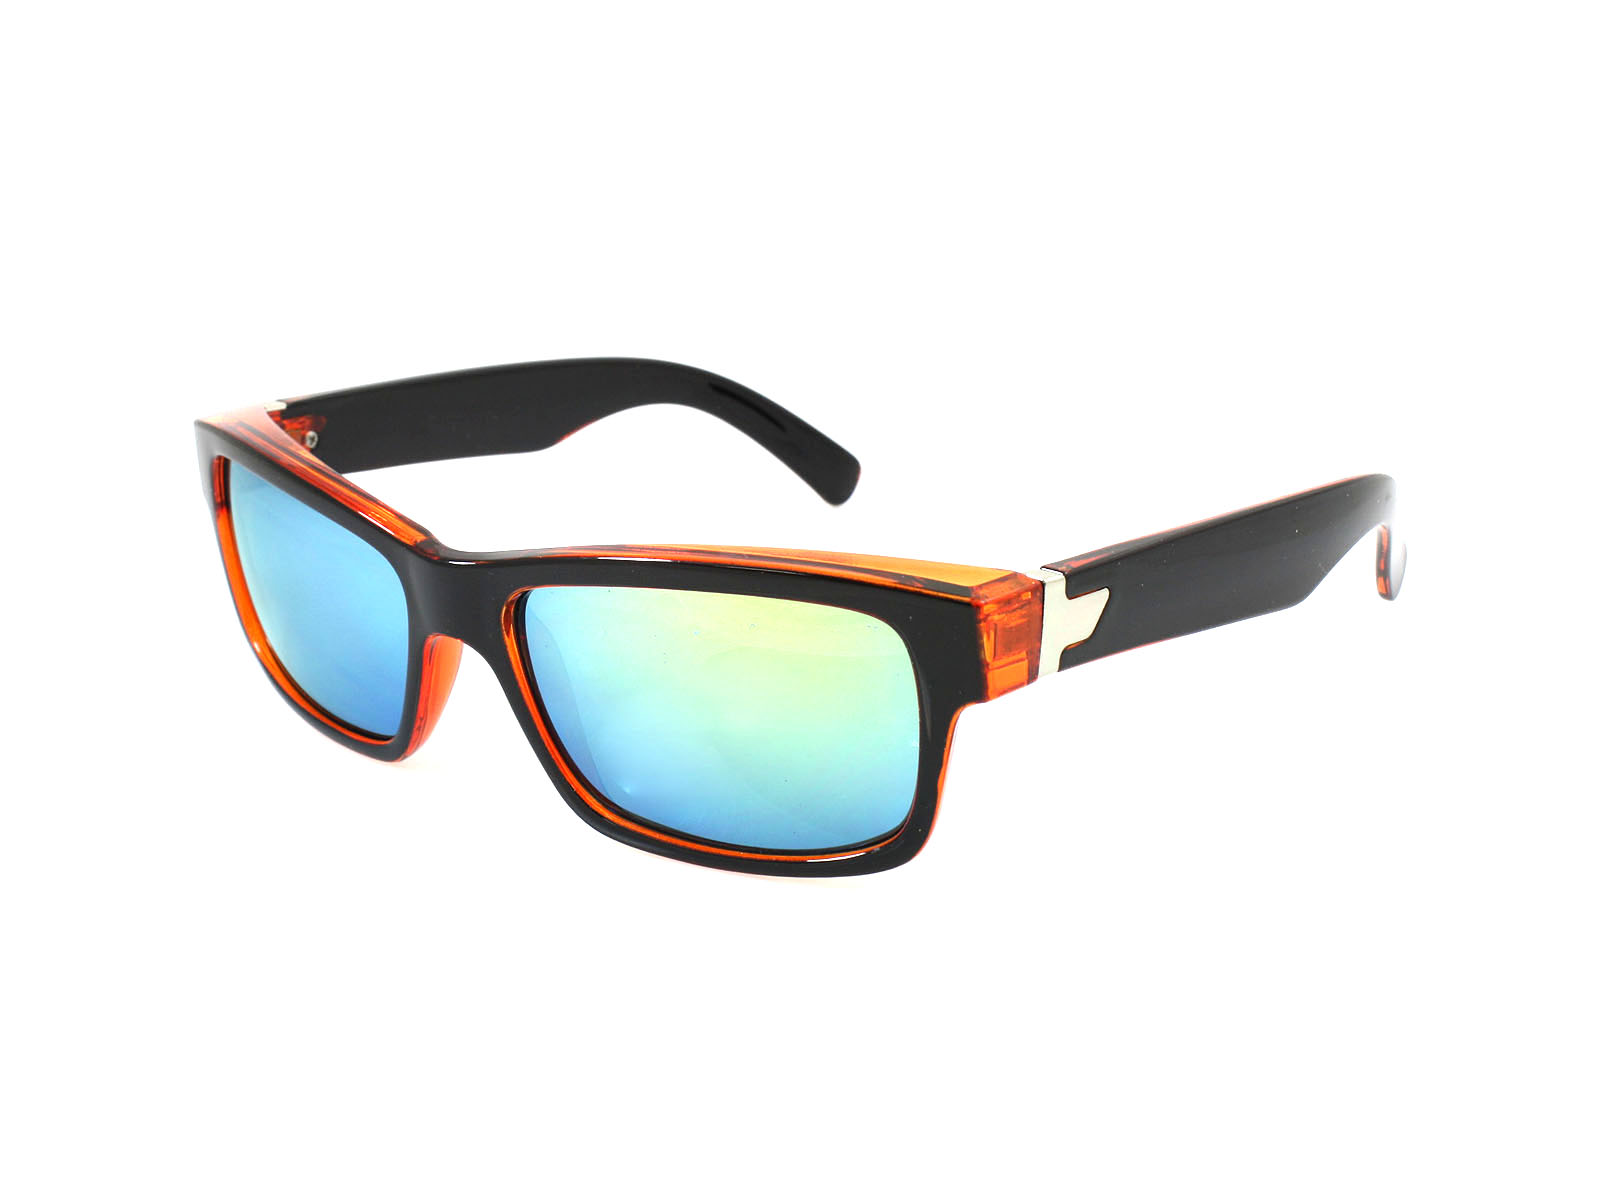 37a6e661135 Octo Polarized Sunglasses Walmart - Restaurant and Palinka Bar